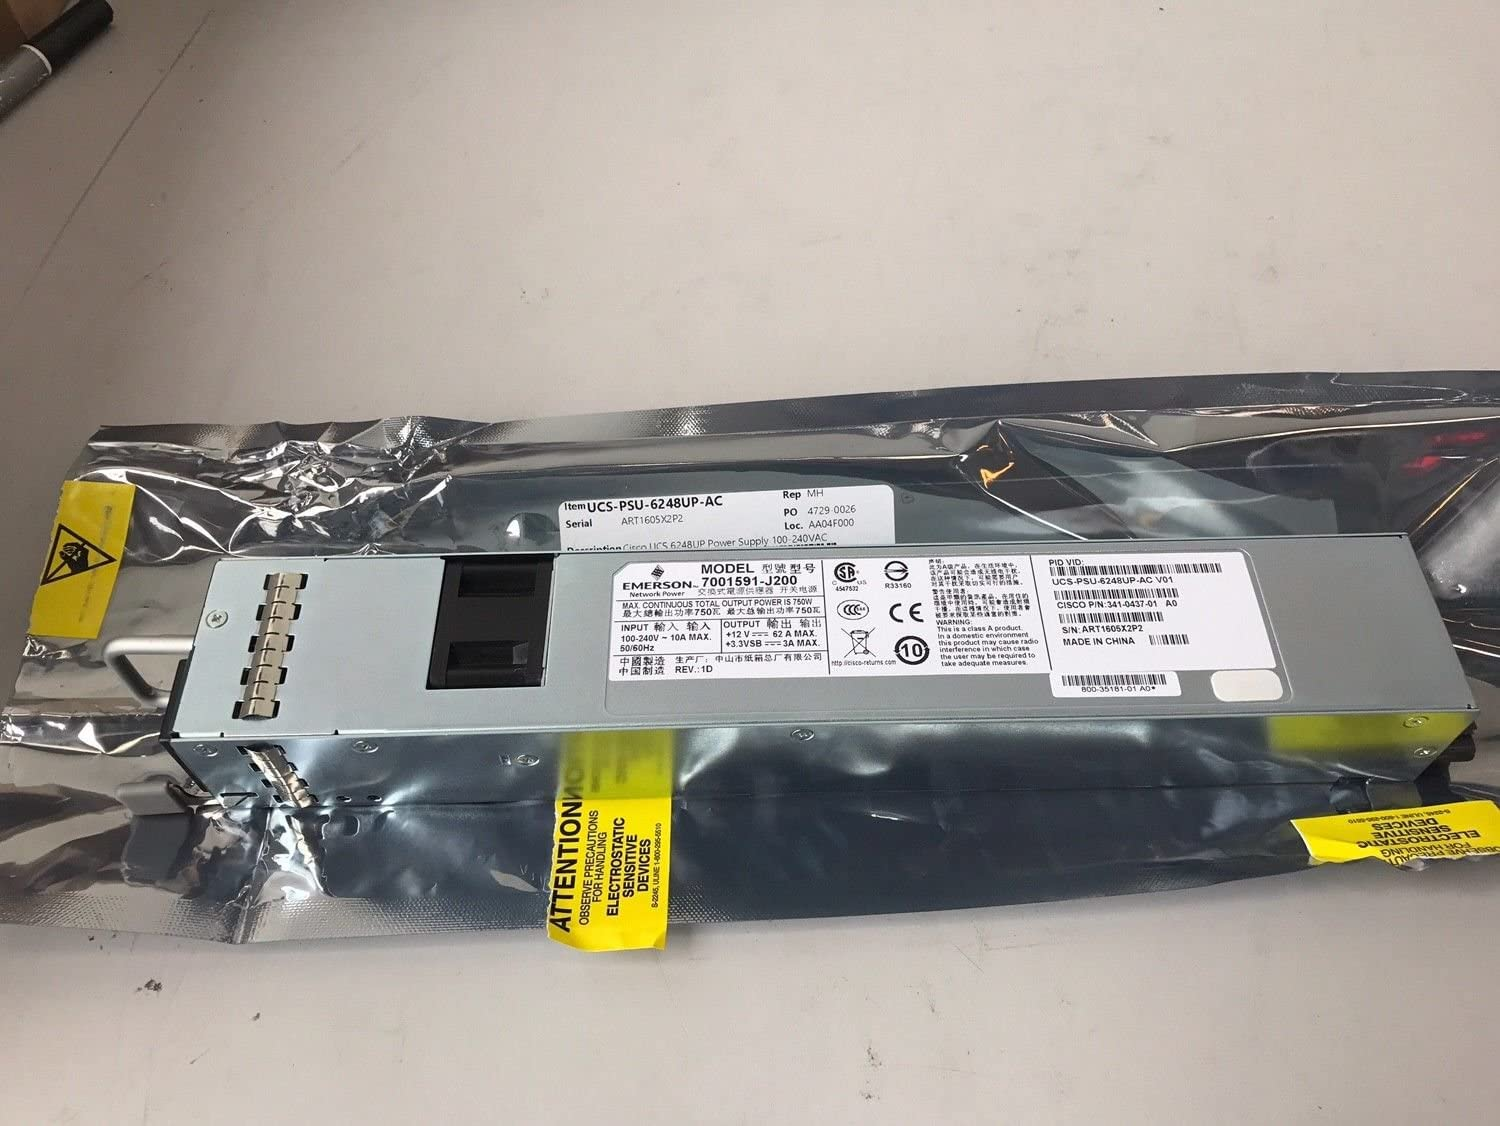 Power Supply 100-240VAC for UCS 6248UP